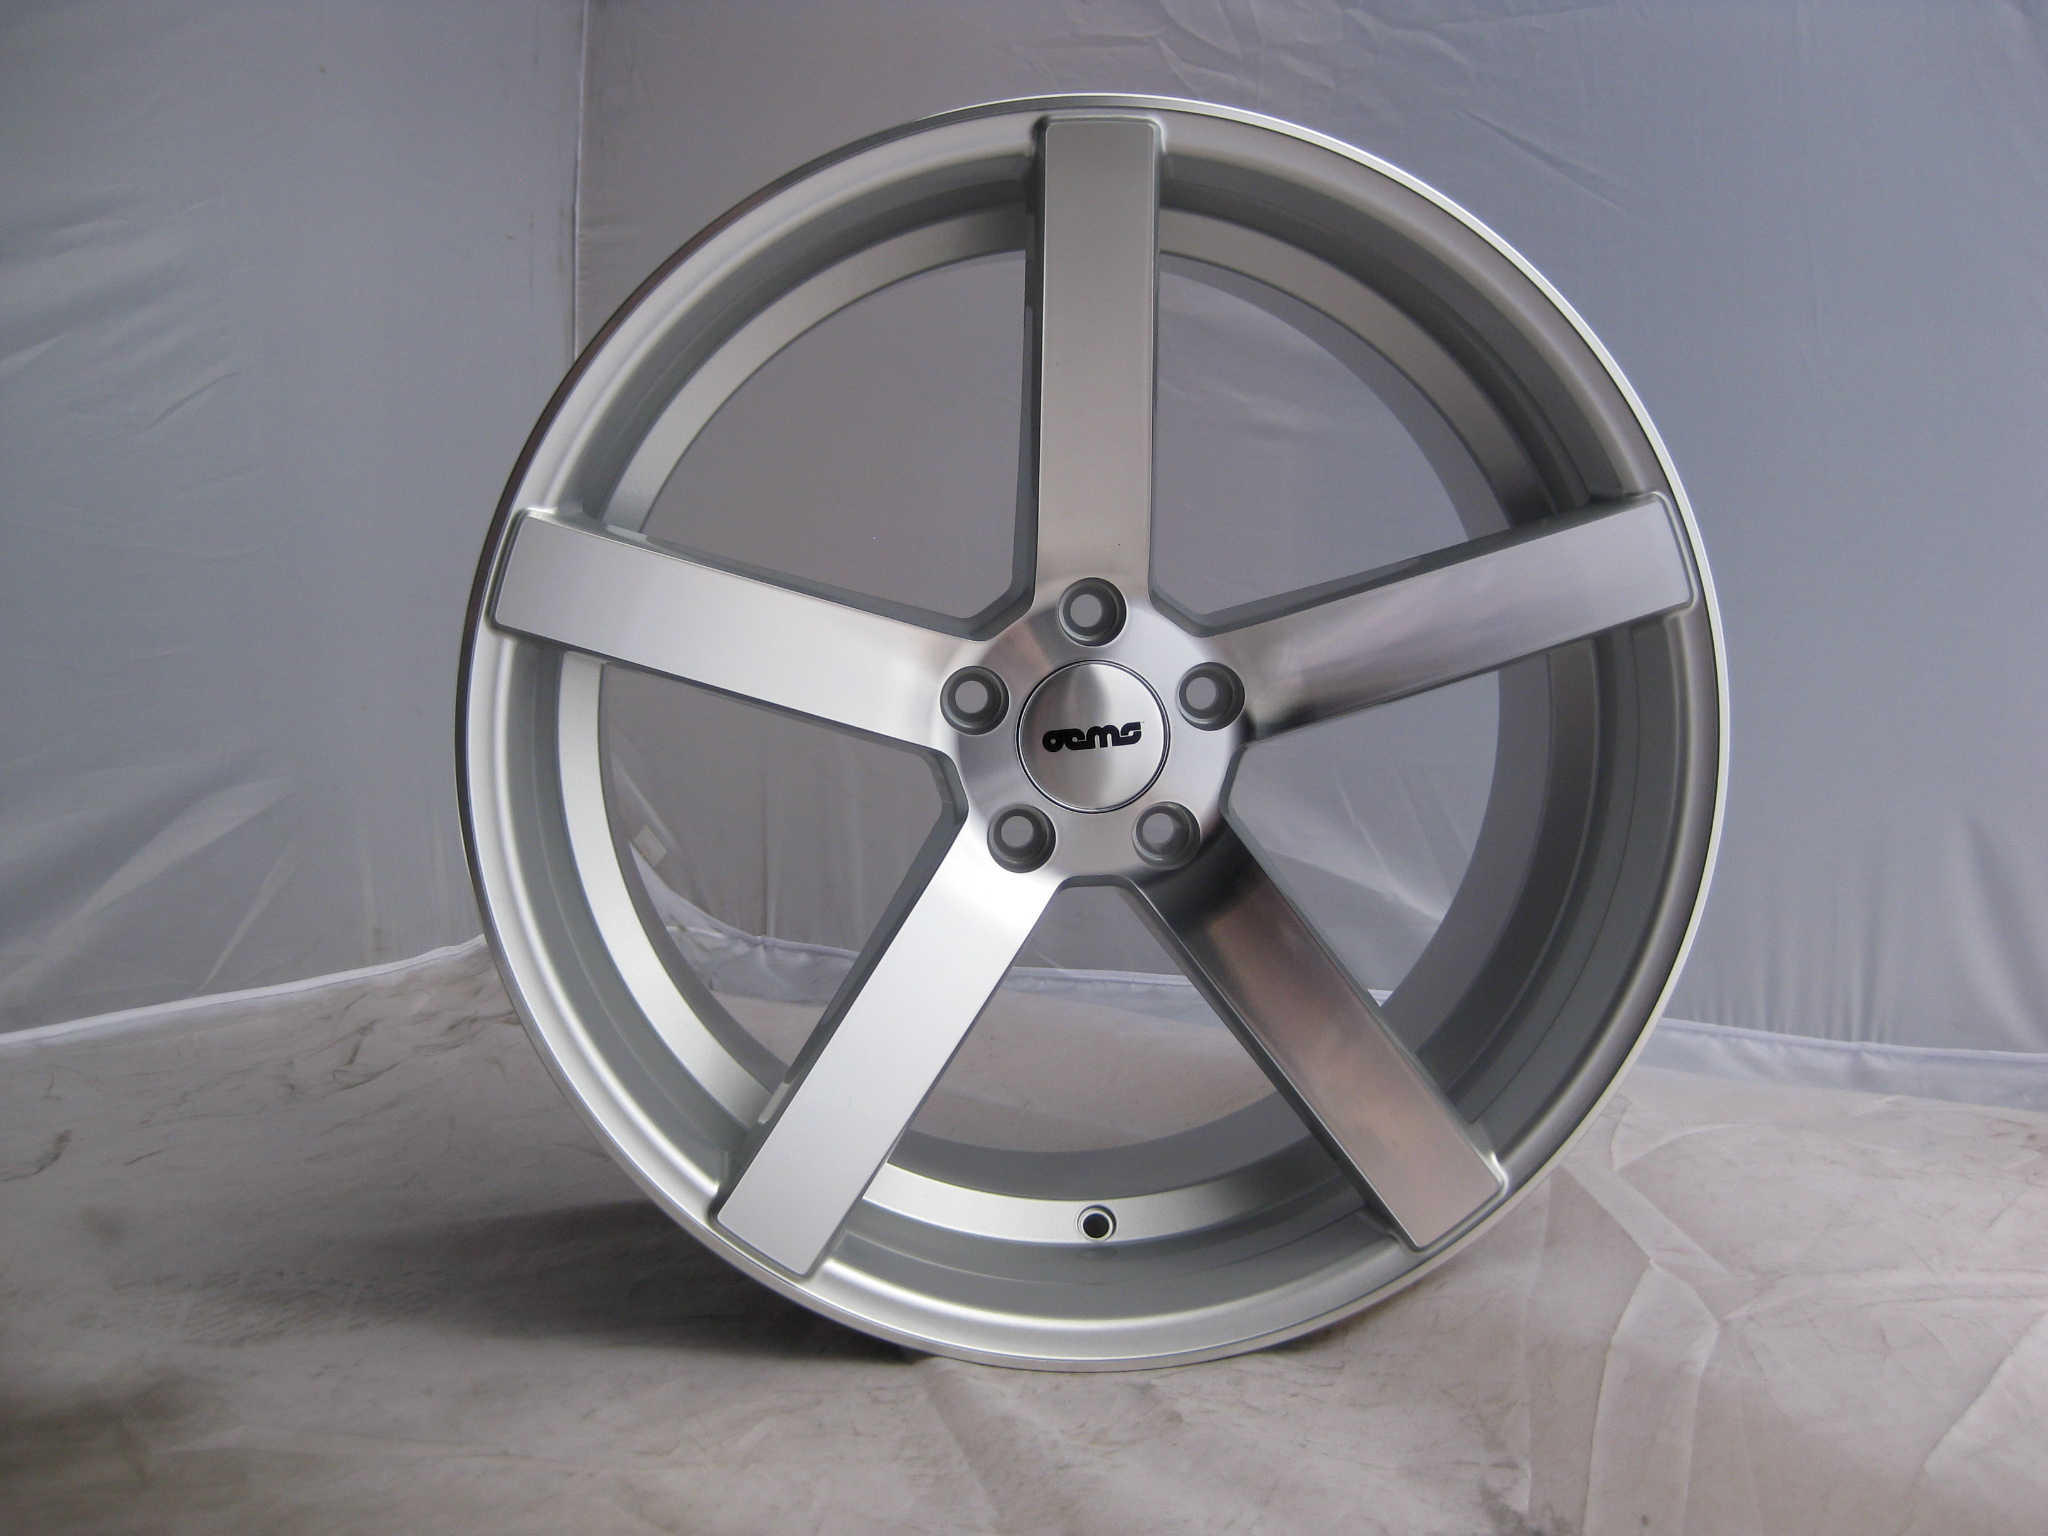 "NEW 18"" OEMS 115 DEEP CONCAVE ALLOY WHEELS IN SILVER POL WITH DEEP DISH, WIDER 9"" REAR"